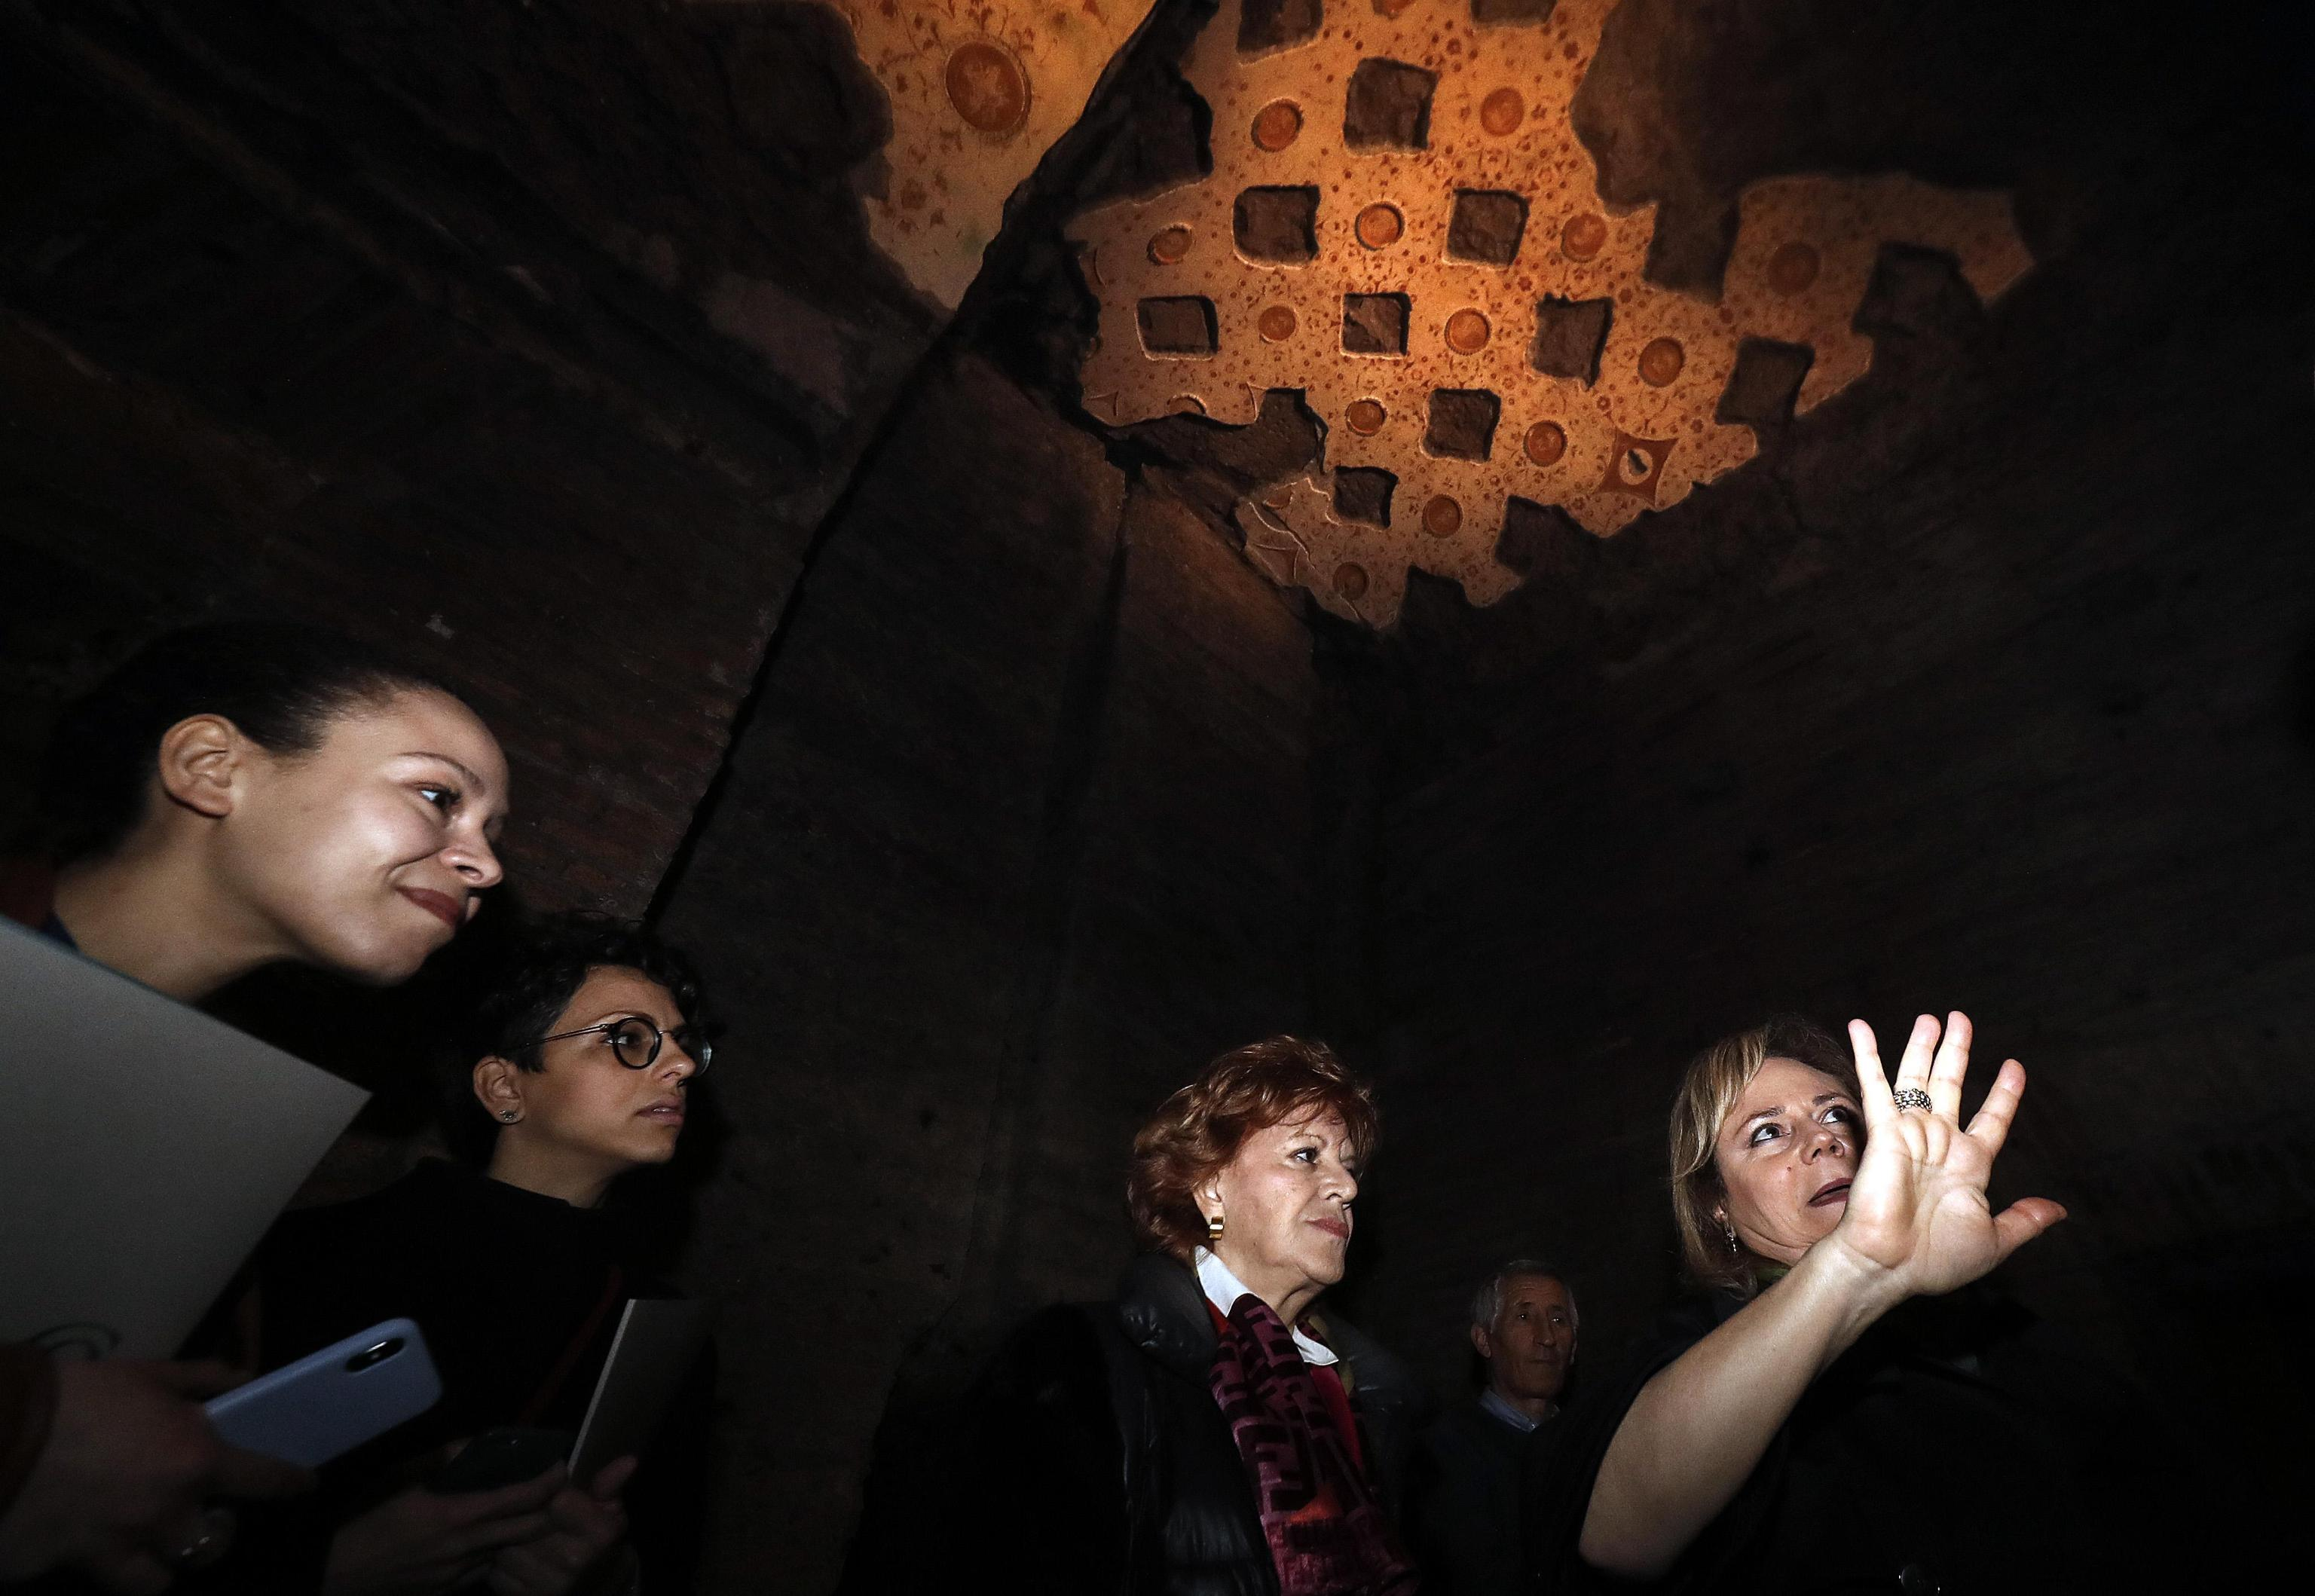 Alfonsina Russo (L), director of the Colosseum Archeological Park, during the presentation of the 'Domus Transitoria', the first Nero's palace on the Palatine Hill, Colosseum Archeological Park, Rome, Italy, 11 April 2019. ANSA/RICCARDO ANTIMIANI